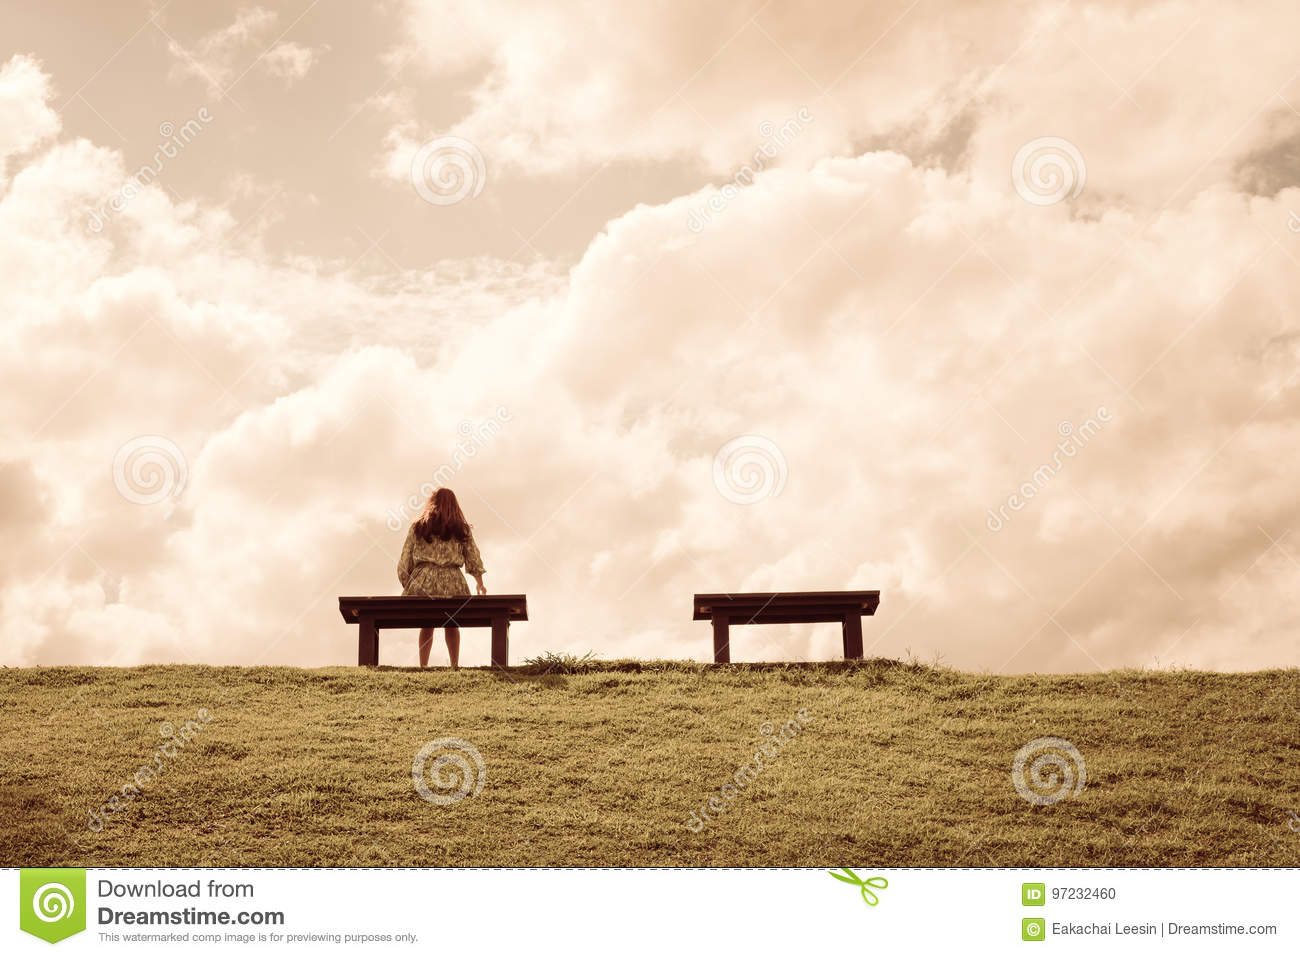 A Women Sitting Alone On A Bench Waiting For Love Stock Photo